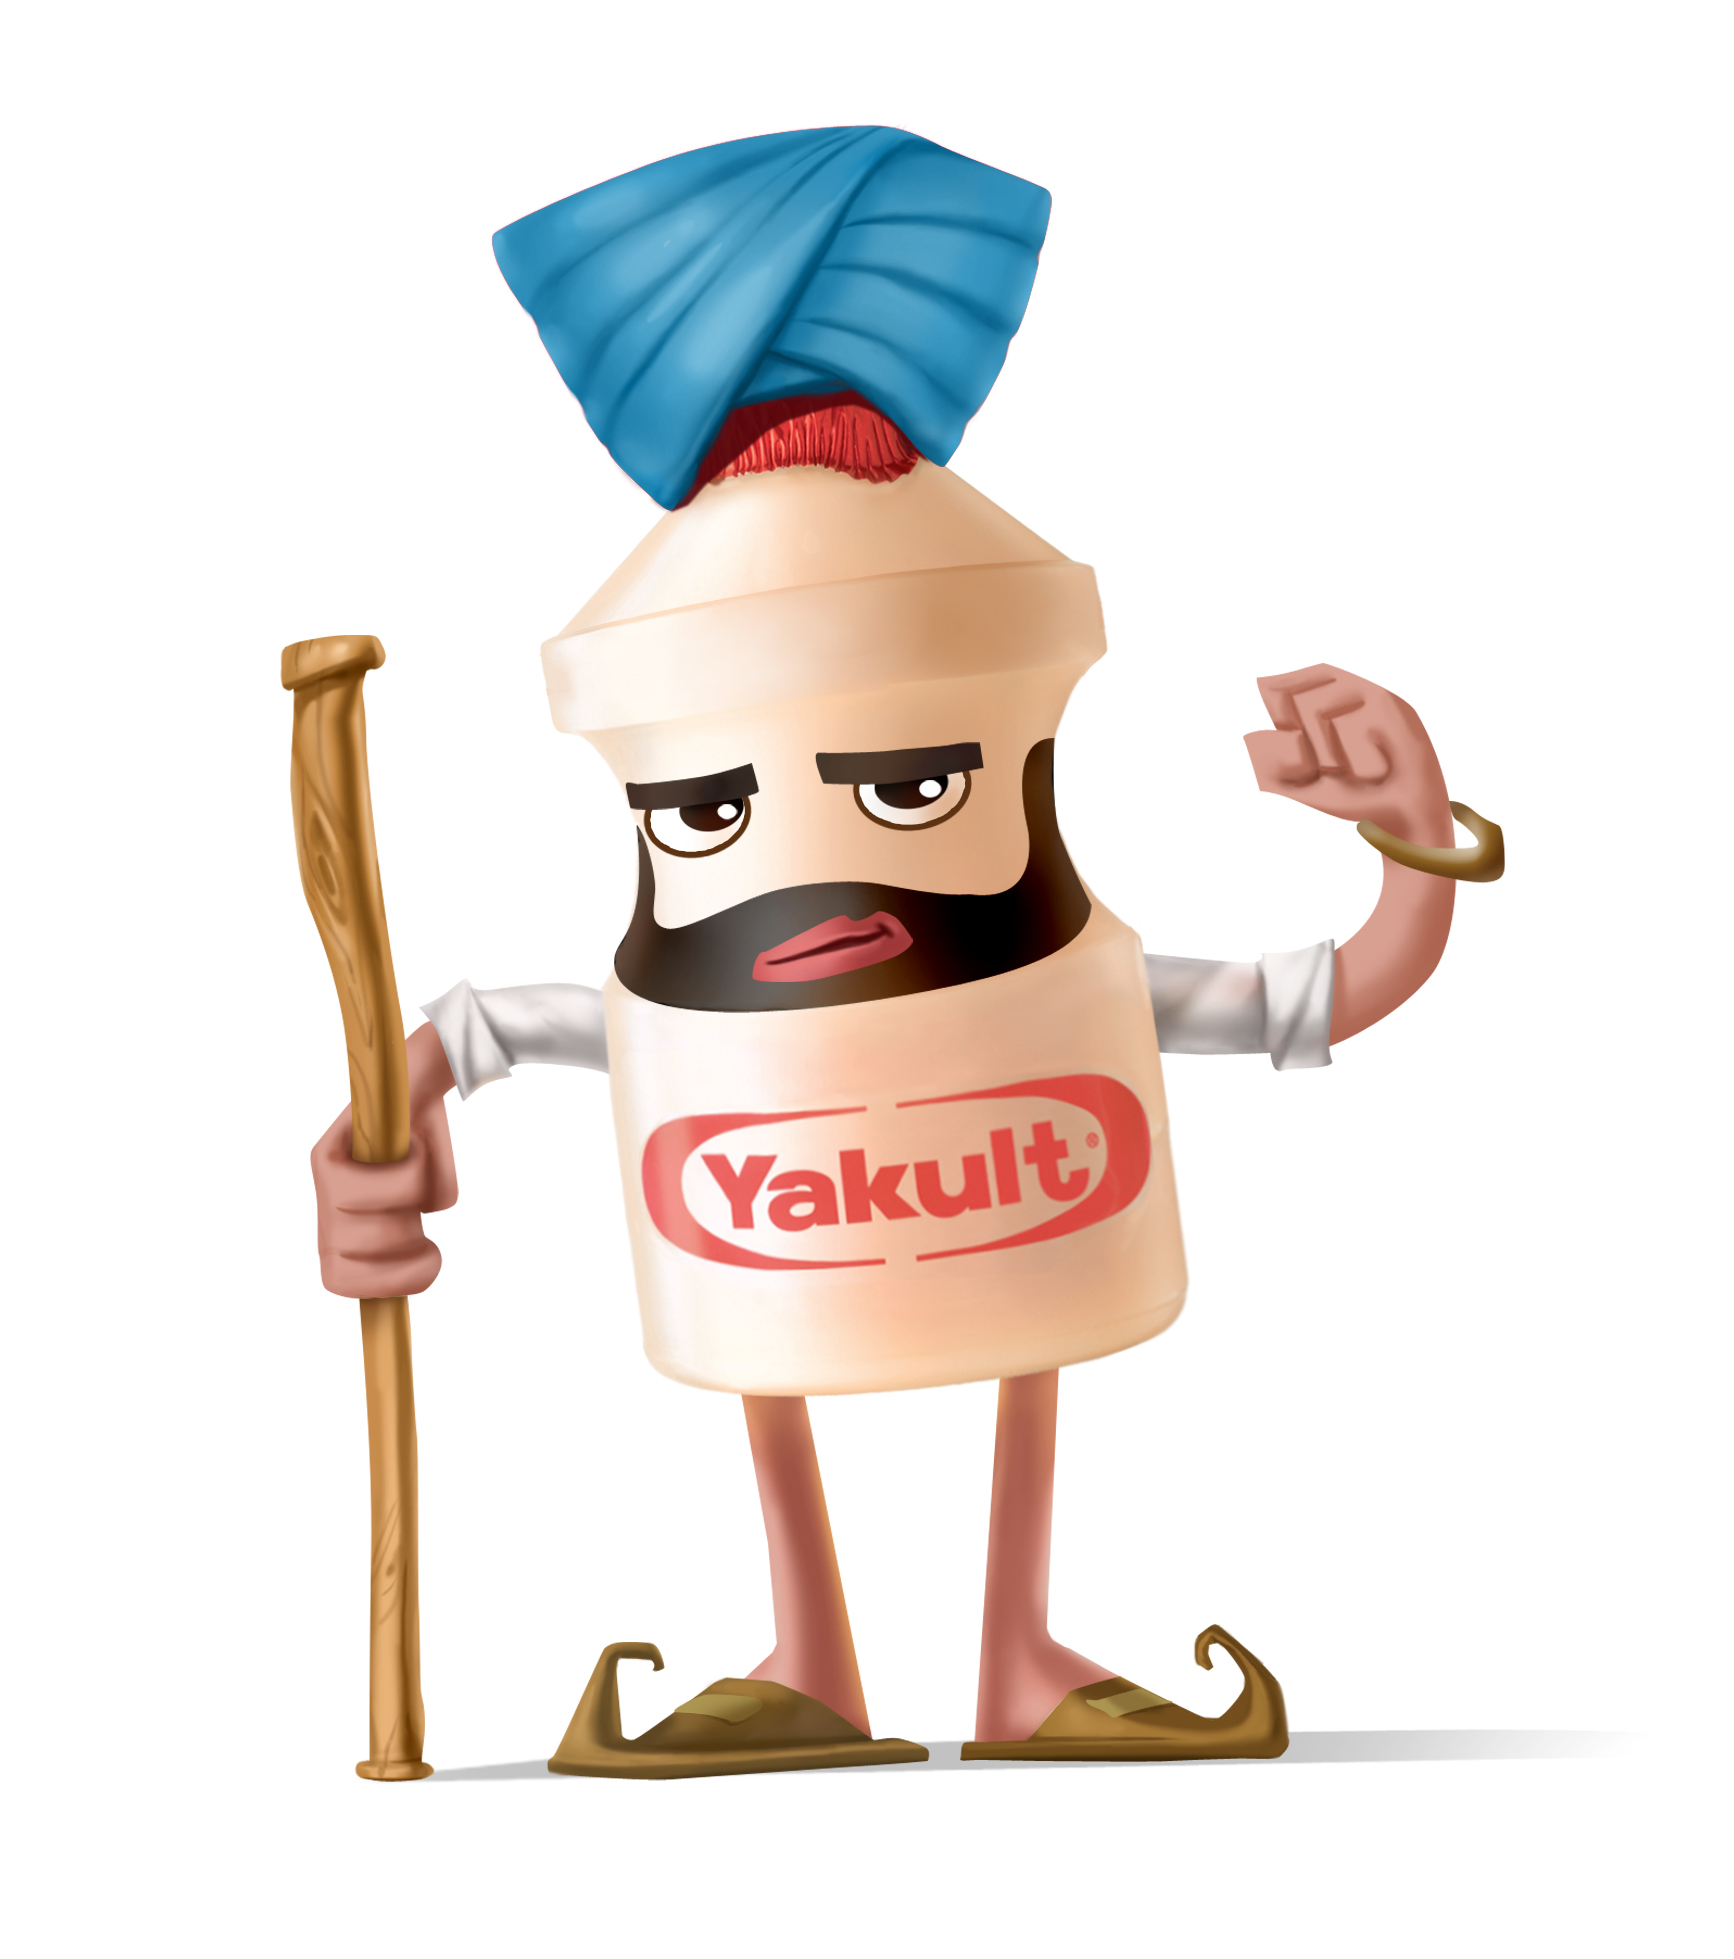 1000+ images about Yakult on Pinterest.